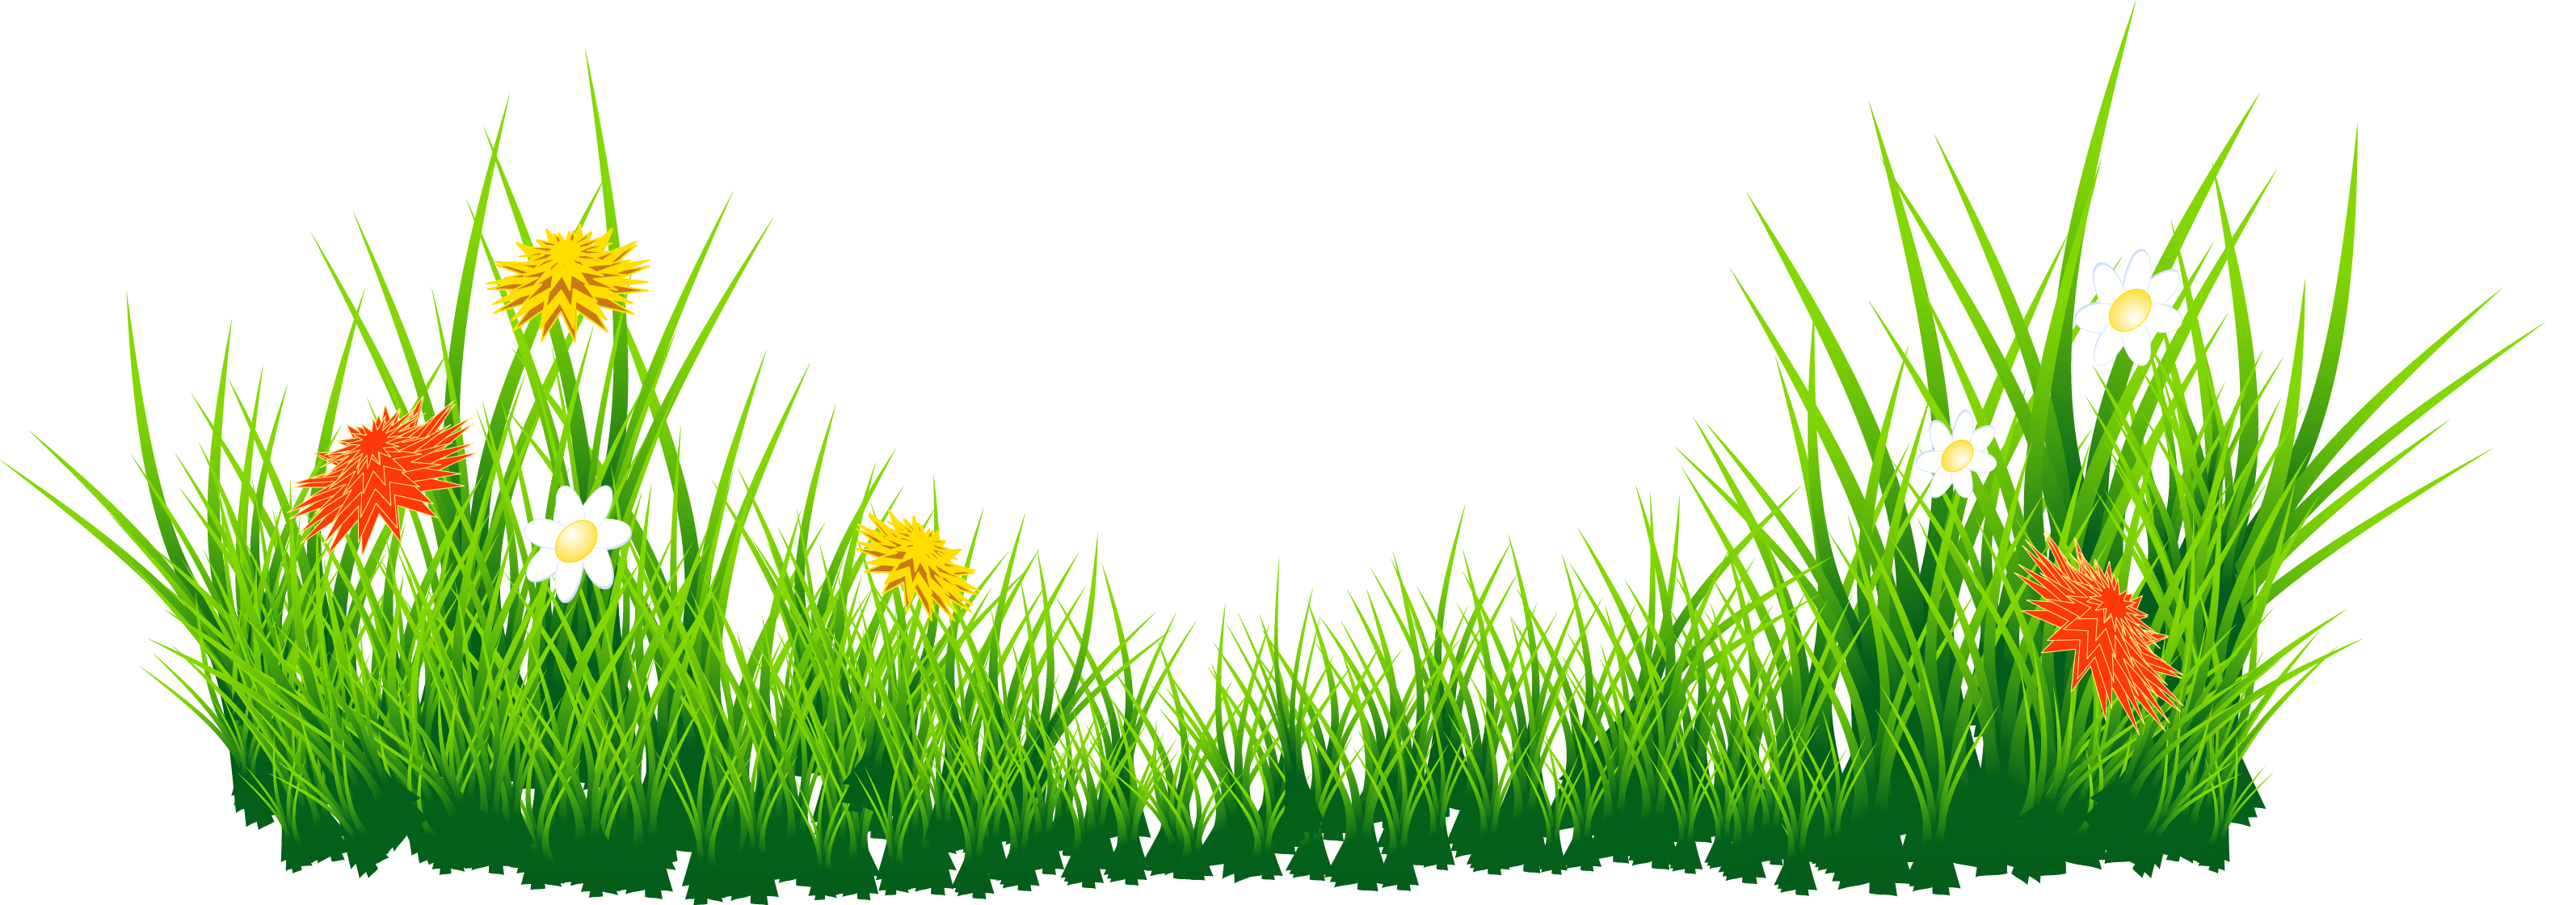 cb editing nature png - Grasses PNG HD